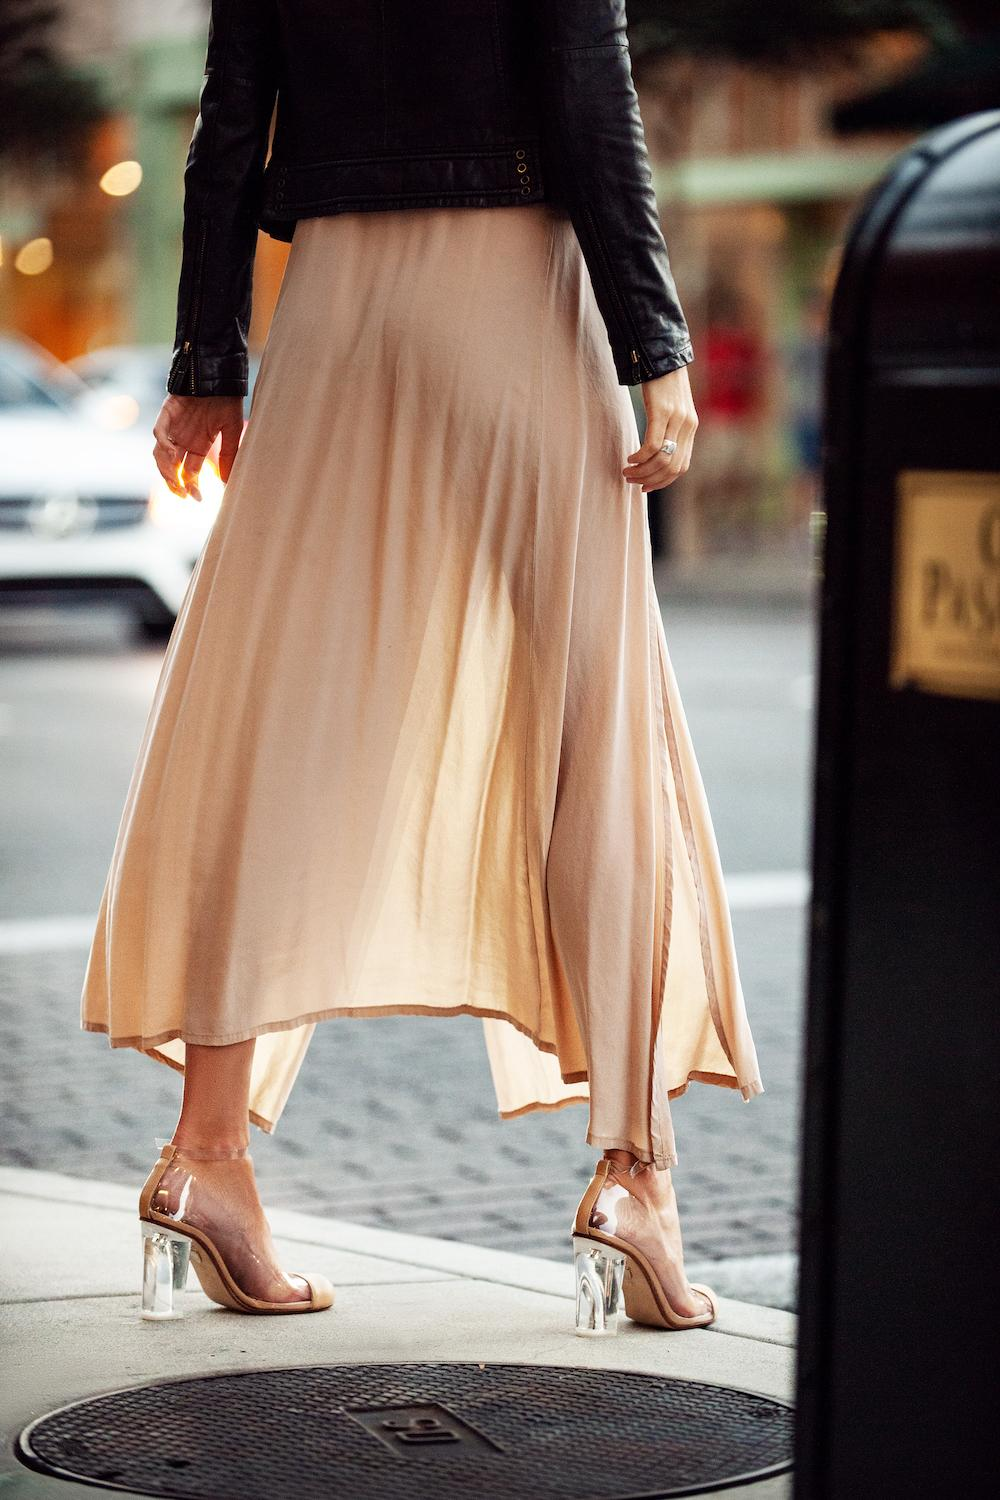 Sheer shoes are the perfect choice for a long skirt or dress